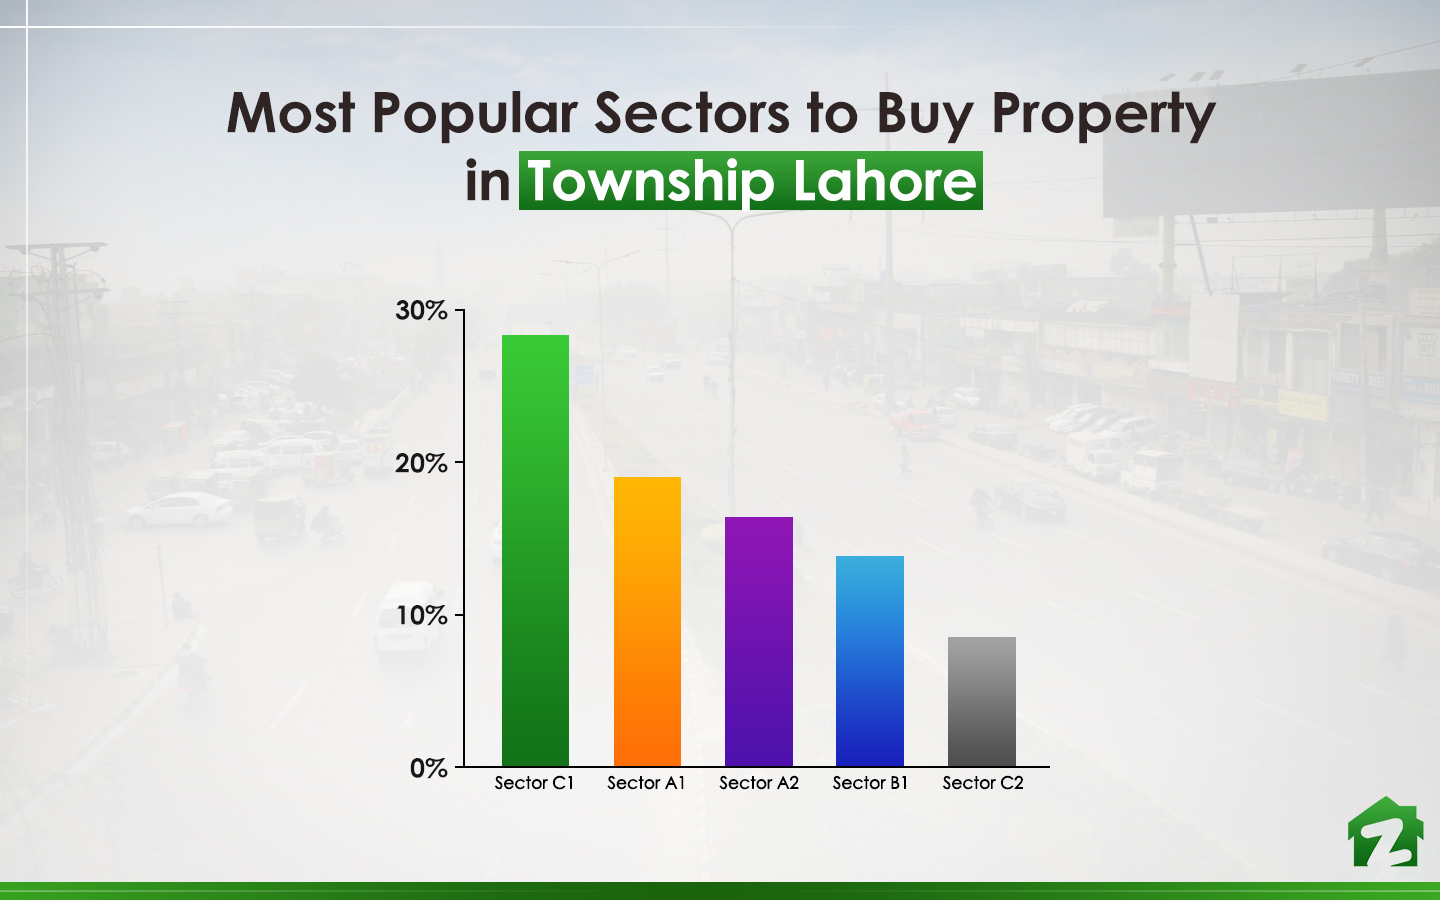 Sector C1 is the most searched sector online for buying properties in Township Lahore